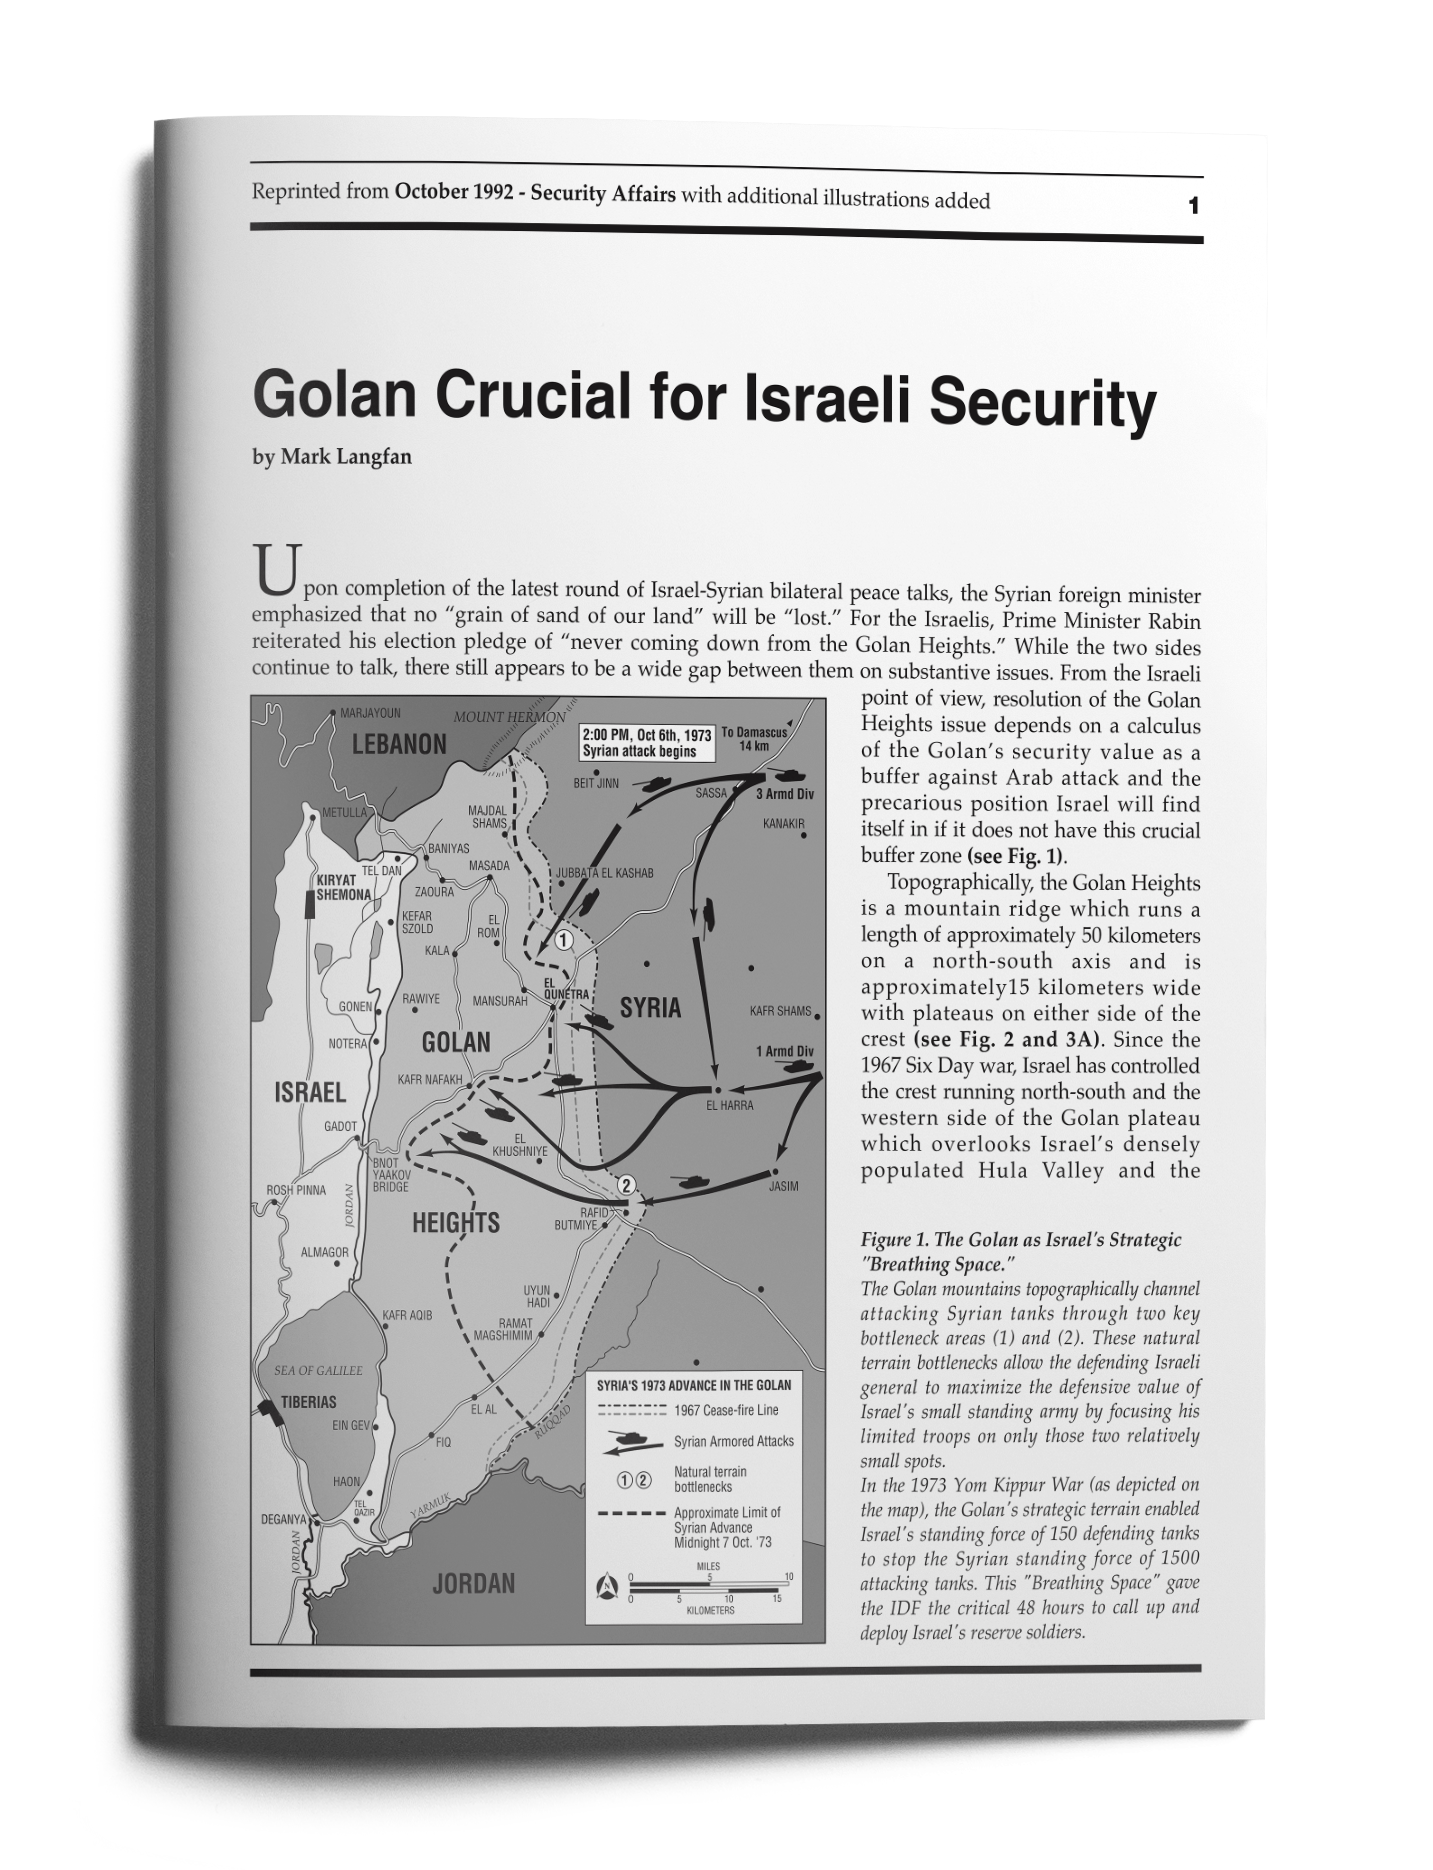 golan crucial for israeli security